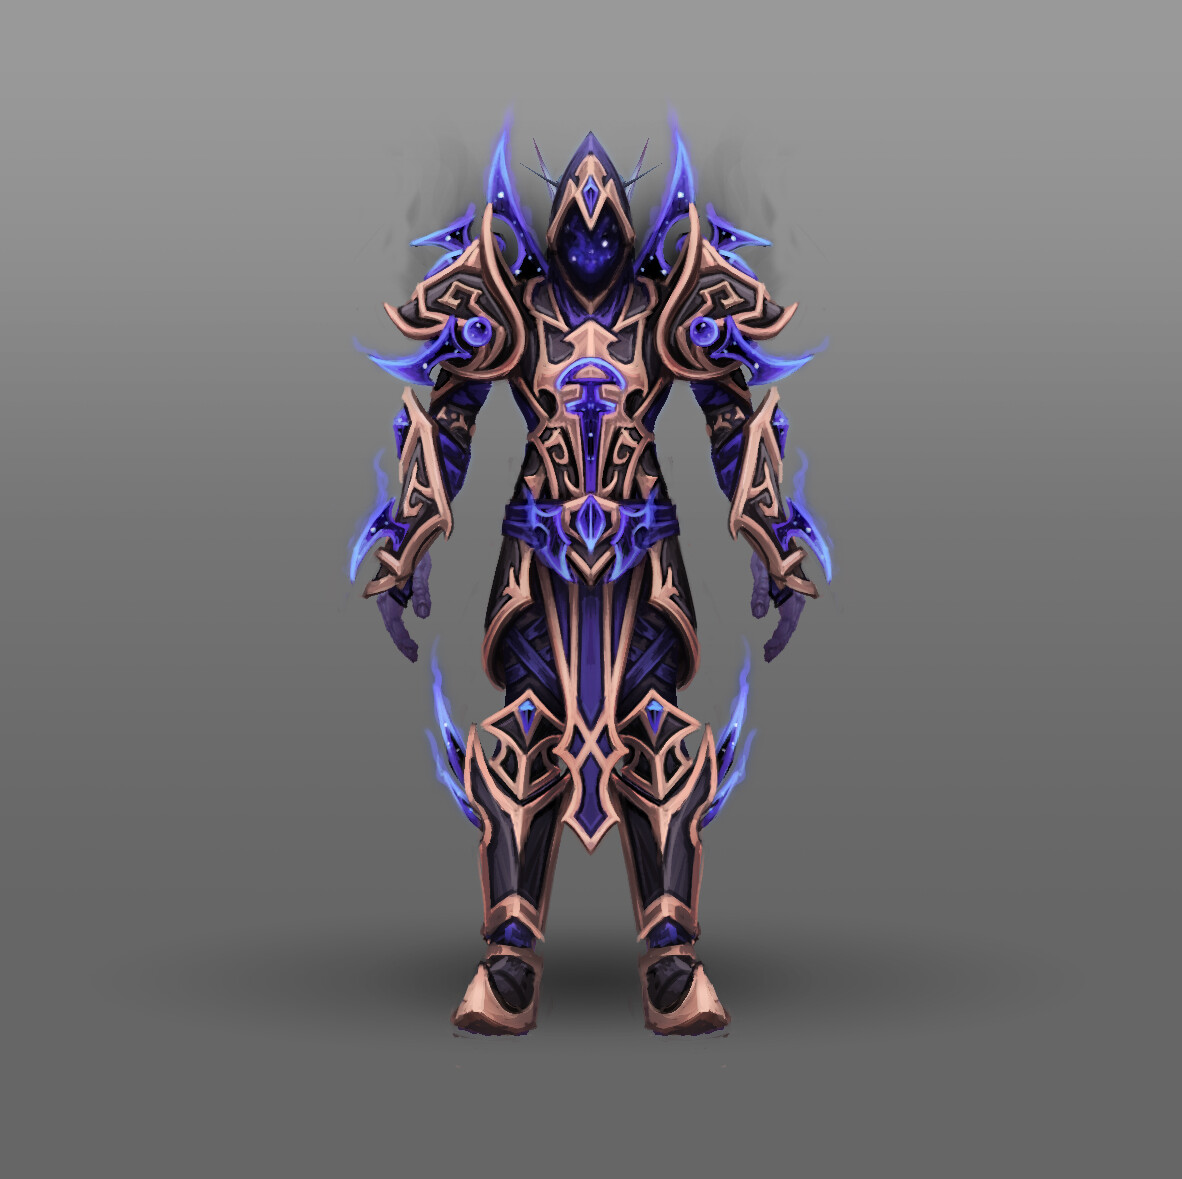 Artstation Fan Art World Of Warcraft Racial Class Armor Design Voidelf Arthur Lorenz Really finishes the heritage armor's look. of warcraft racial class armor design